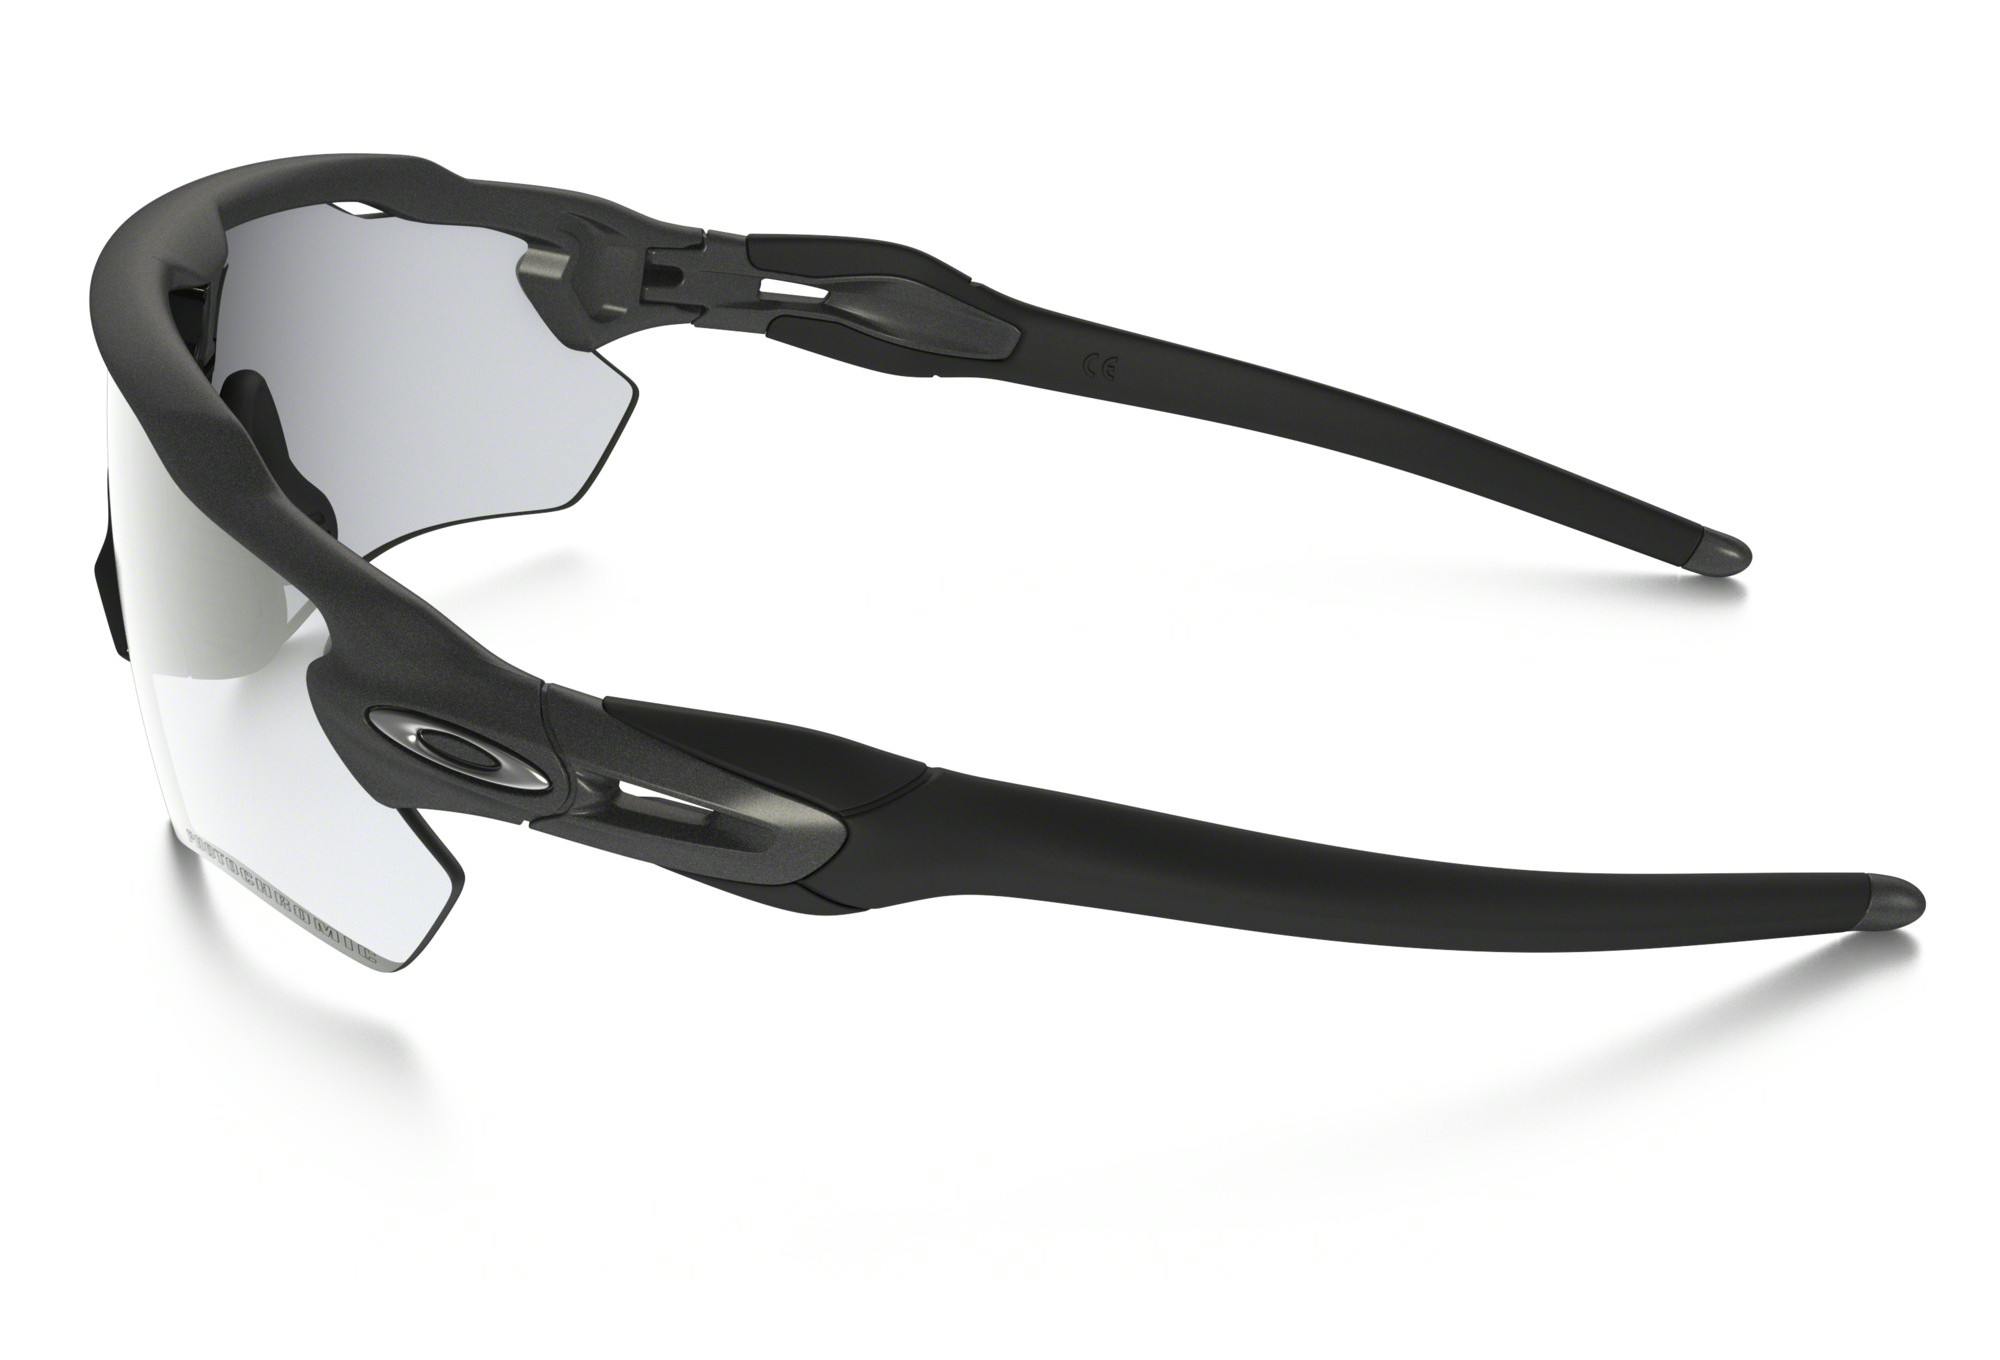 0d1bb6d272 OAKLEY Sunglasses RADAR EV PATH PHOTOCHROMIC Black Clear Black Iridium Ref  OO9208-13